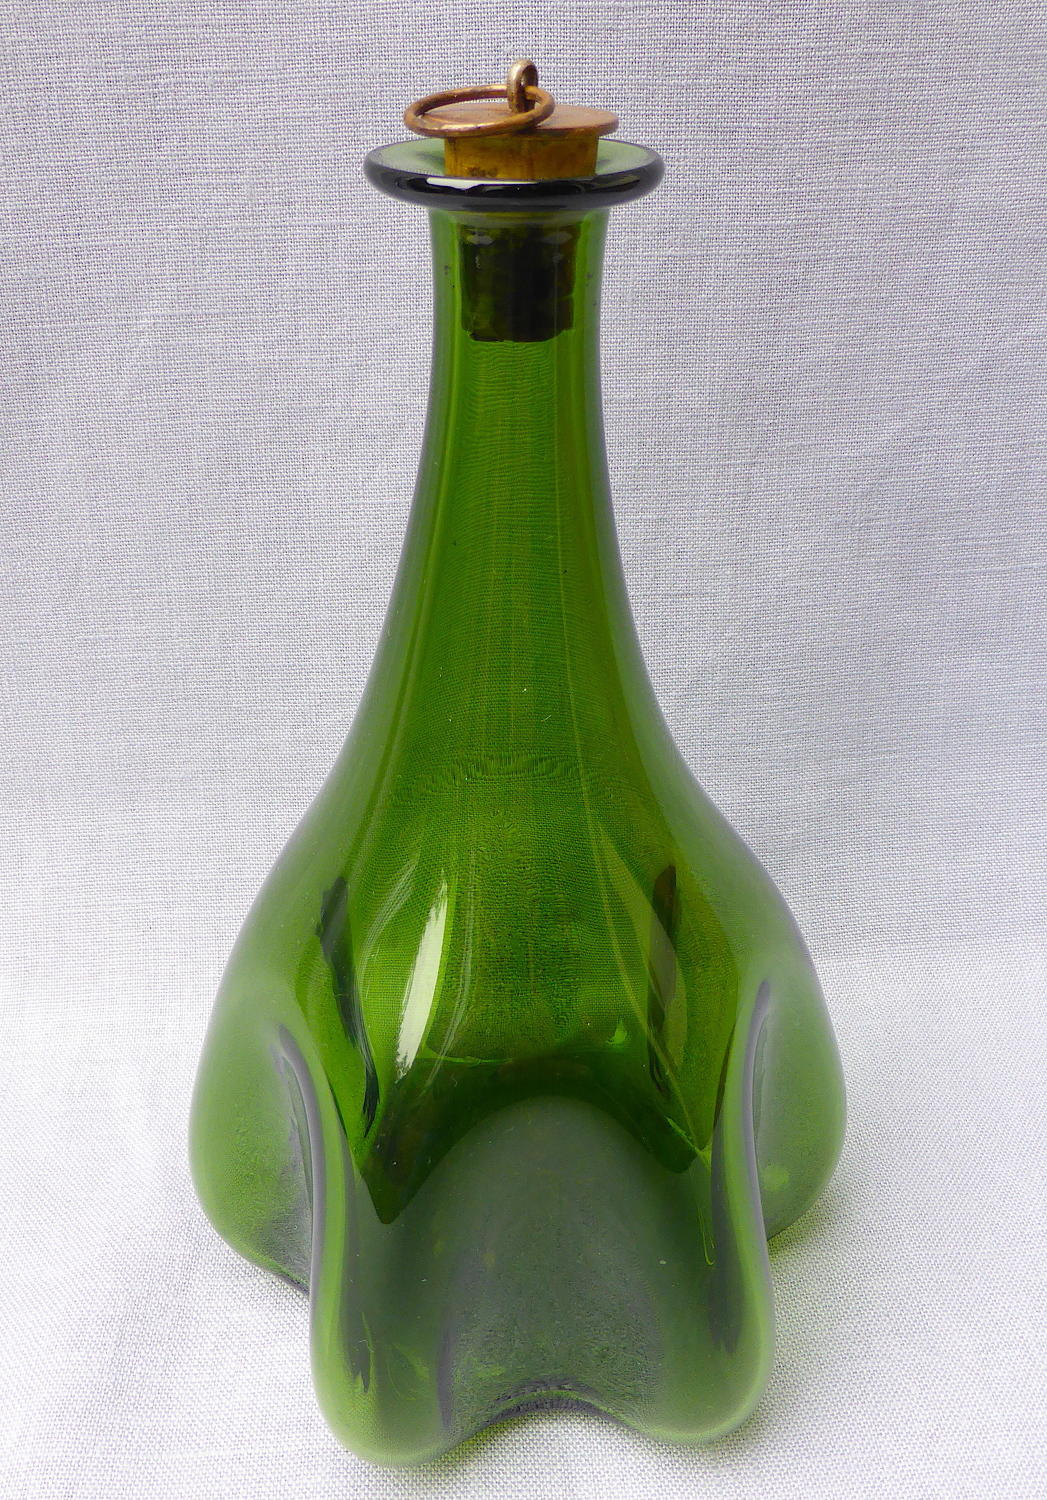 19th century melon-lobbed glass barber bottle